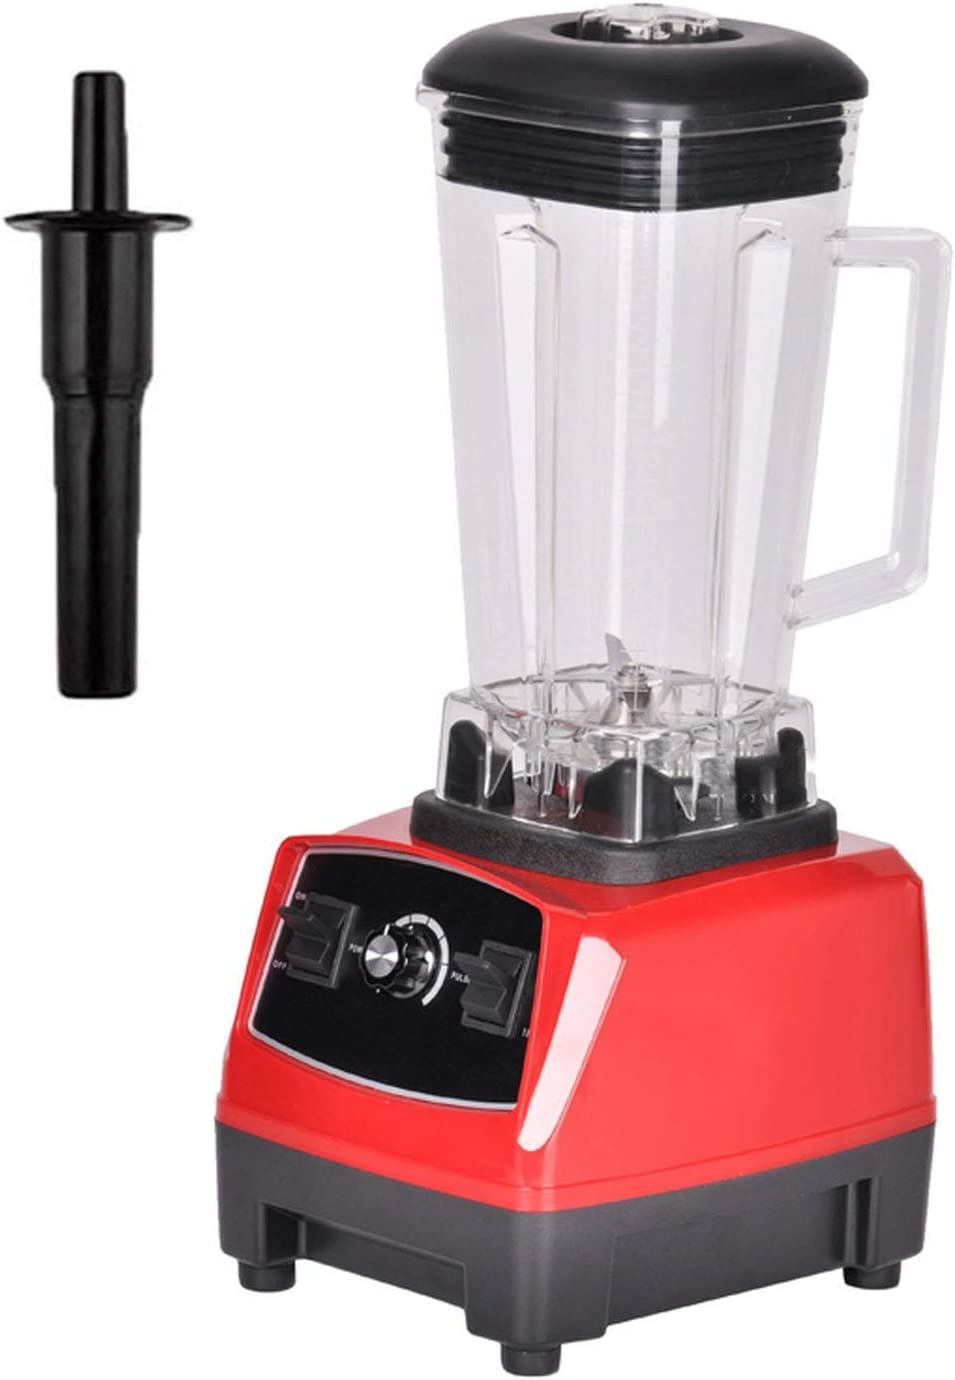 BPA Free 3HP 2200W Heavy Duty Commercial Grade Mixer Juicer High Power Food Processor Ice Smoothie Bar Fruit Blender,RED,UK Plug